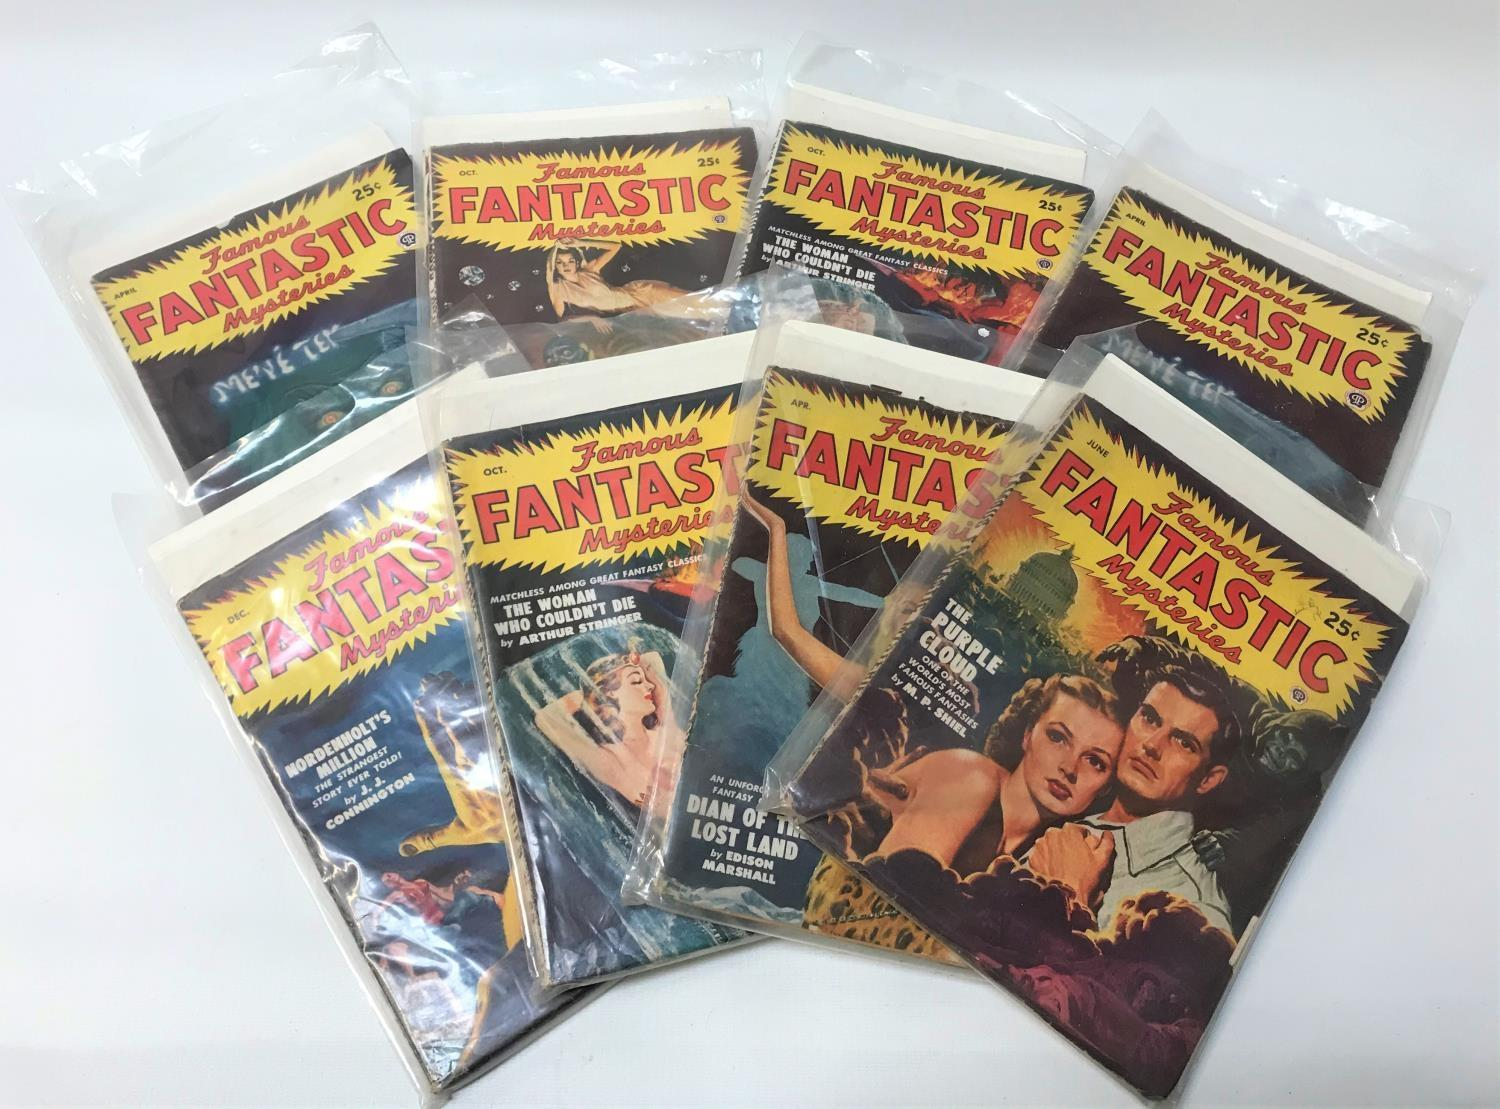 SELECTION OF FAMOUS FANTASTIC MYSTERIES SCIENCE FICTION MAGAZINES eight editions dating from